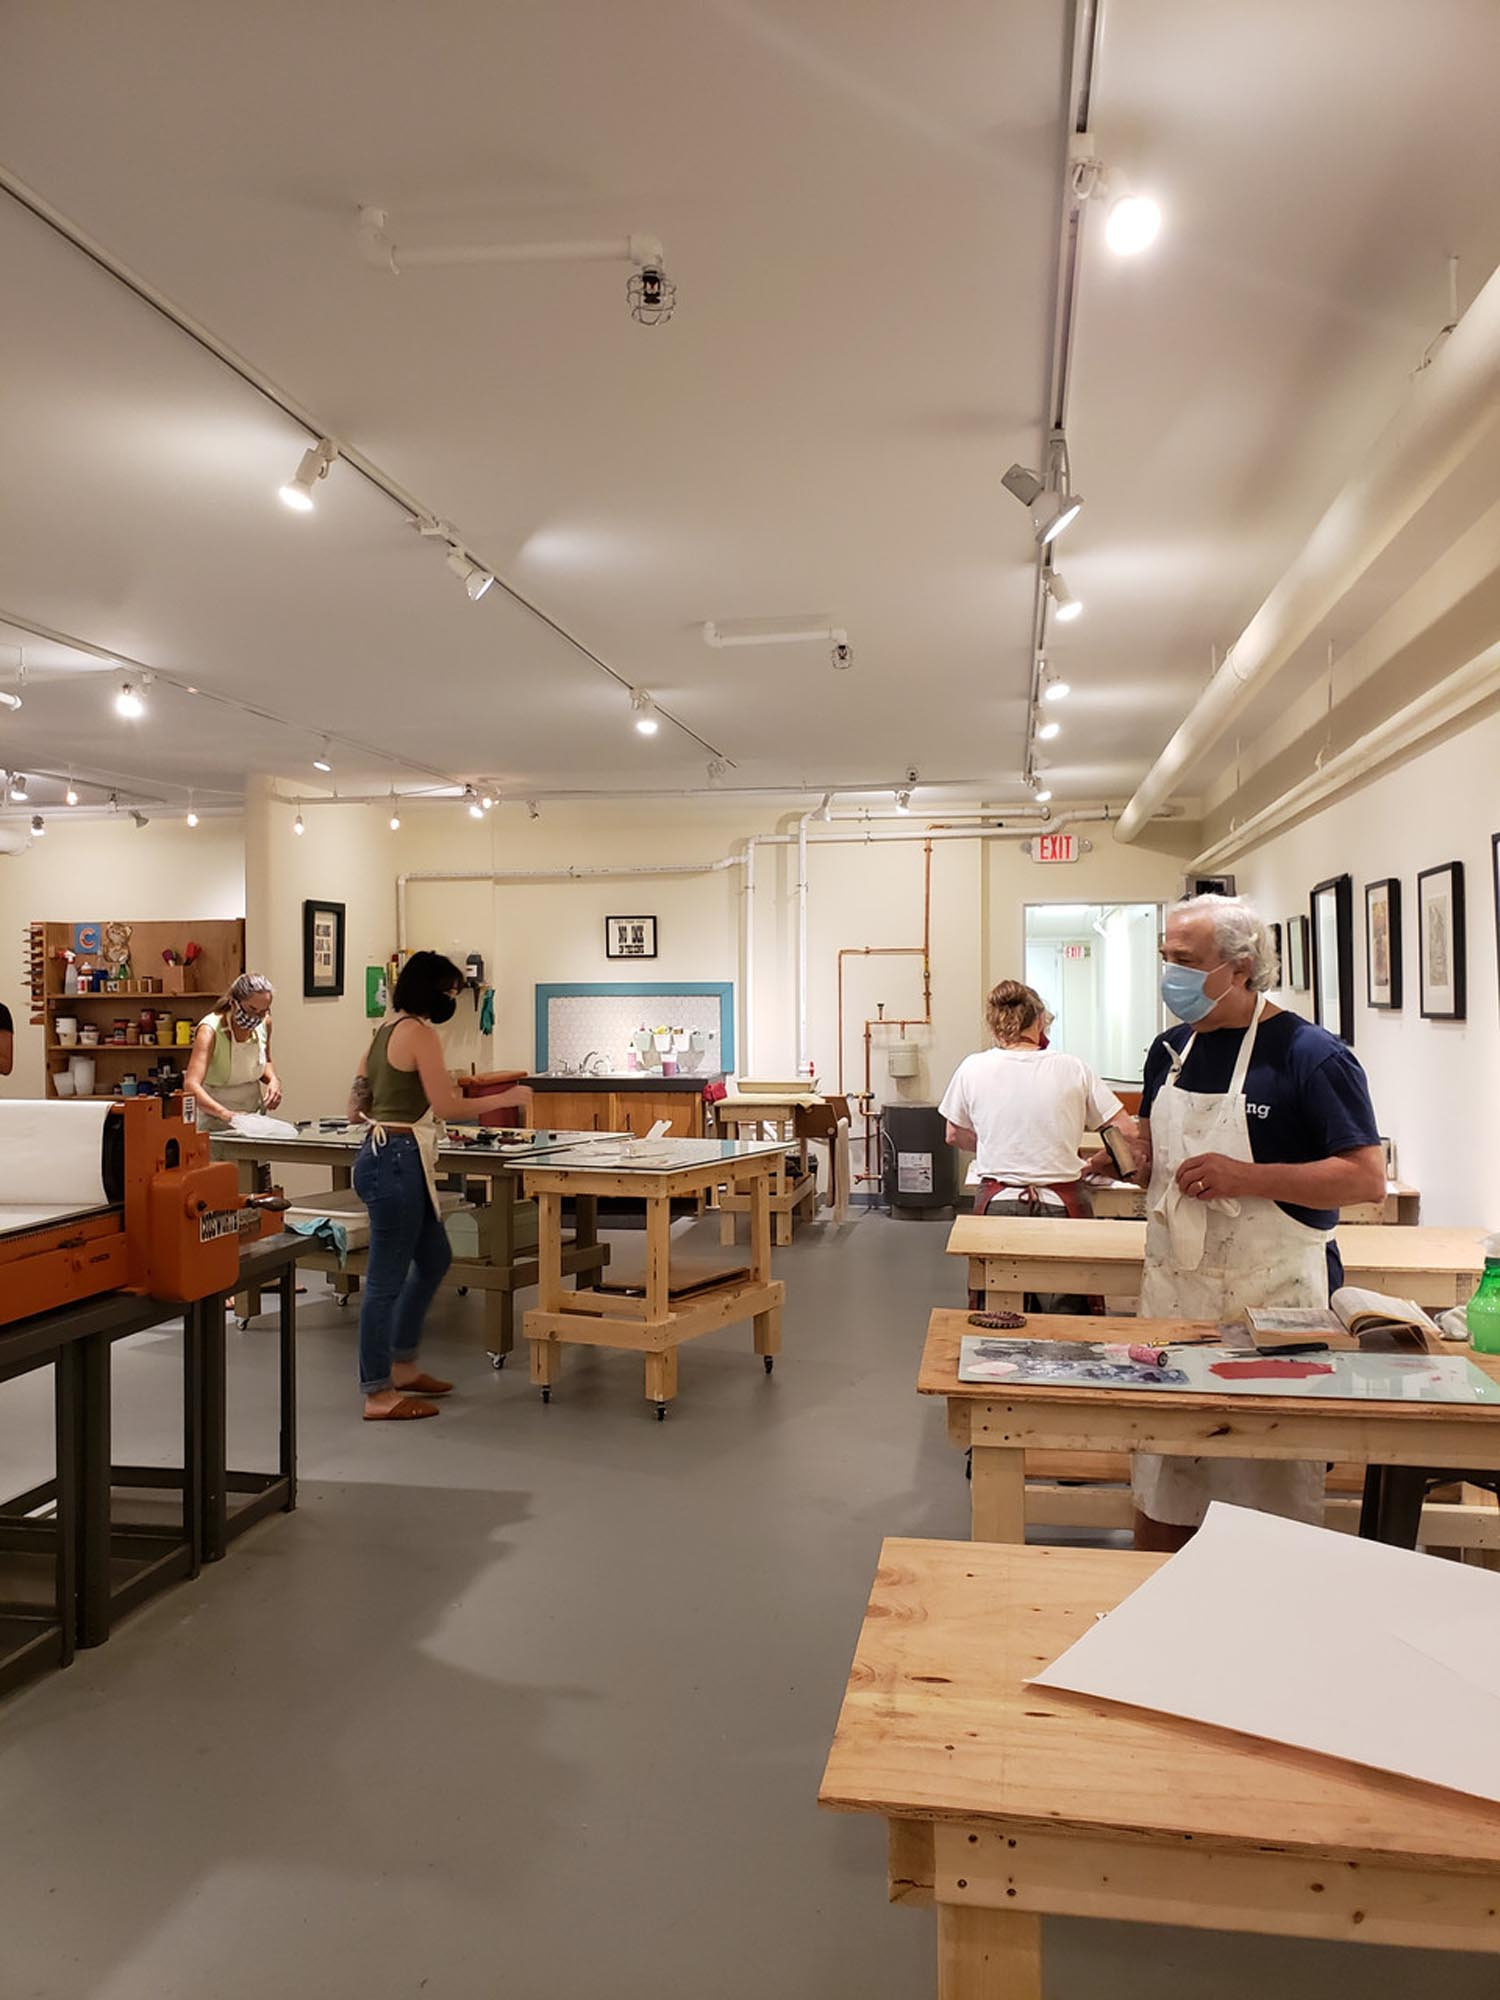 screen printing workshop, a studio with a few people spaced out at different tables